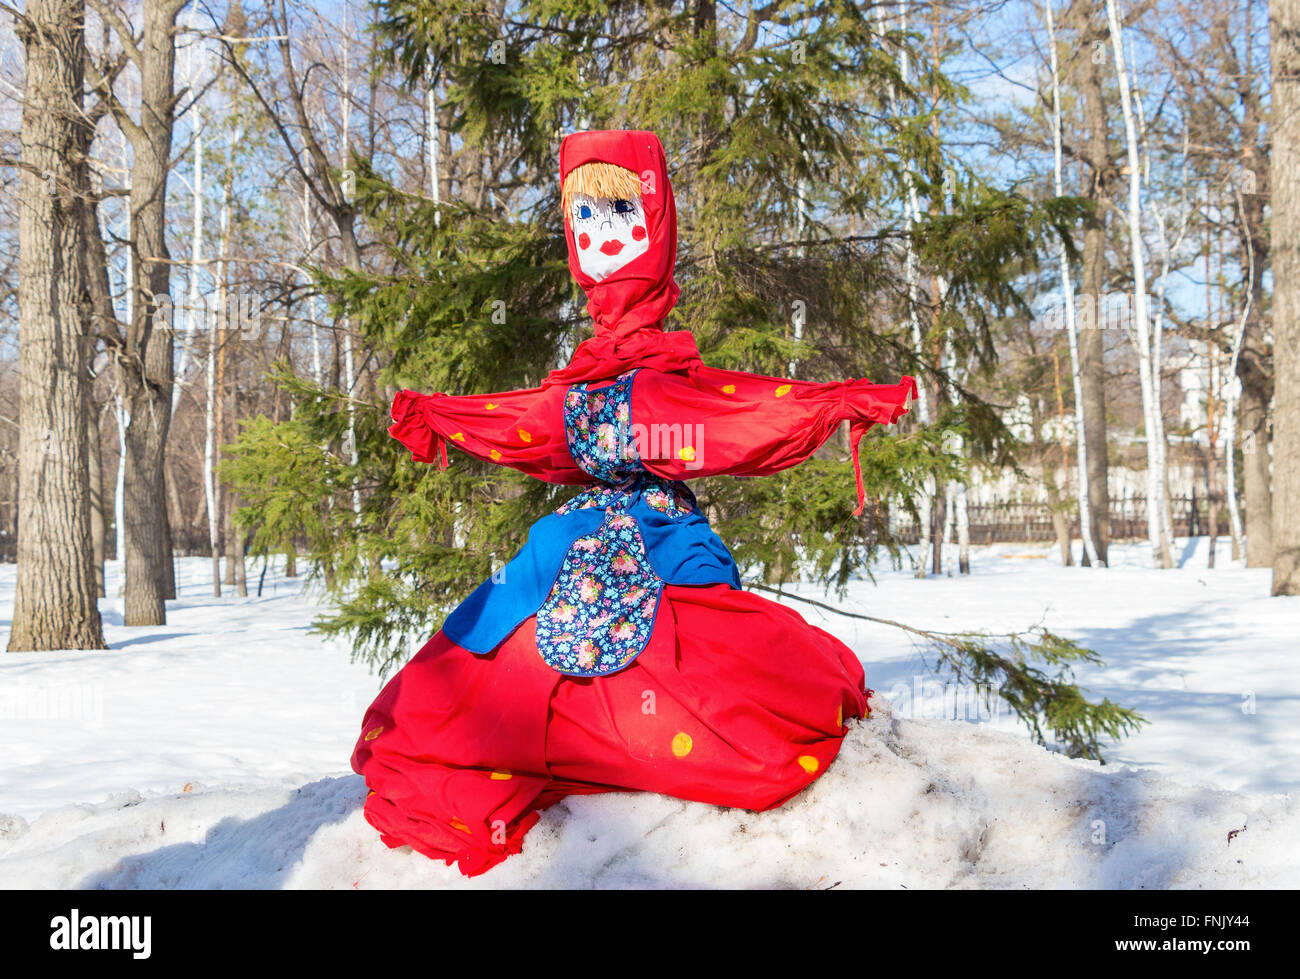 Shrovetide in Russia. Big doll for the burning. Maslenitsa or Pancake Week is the Slavic Holiday - Stock Image